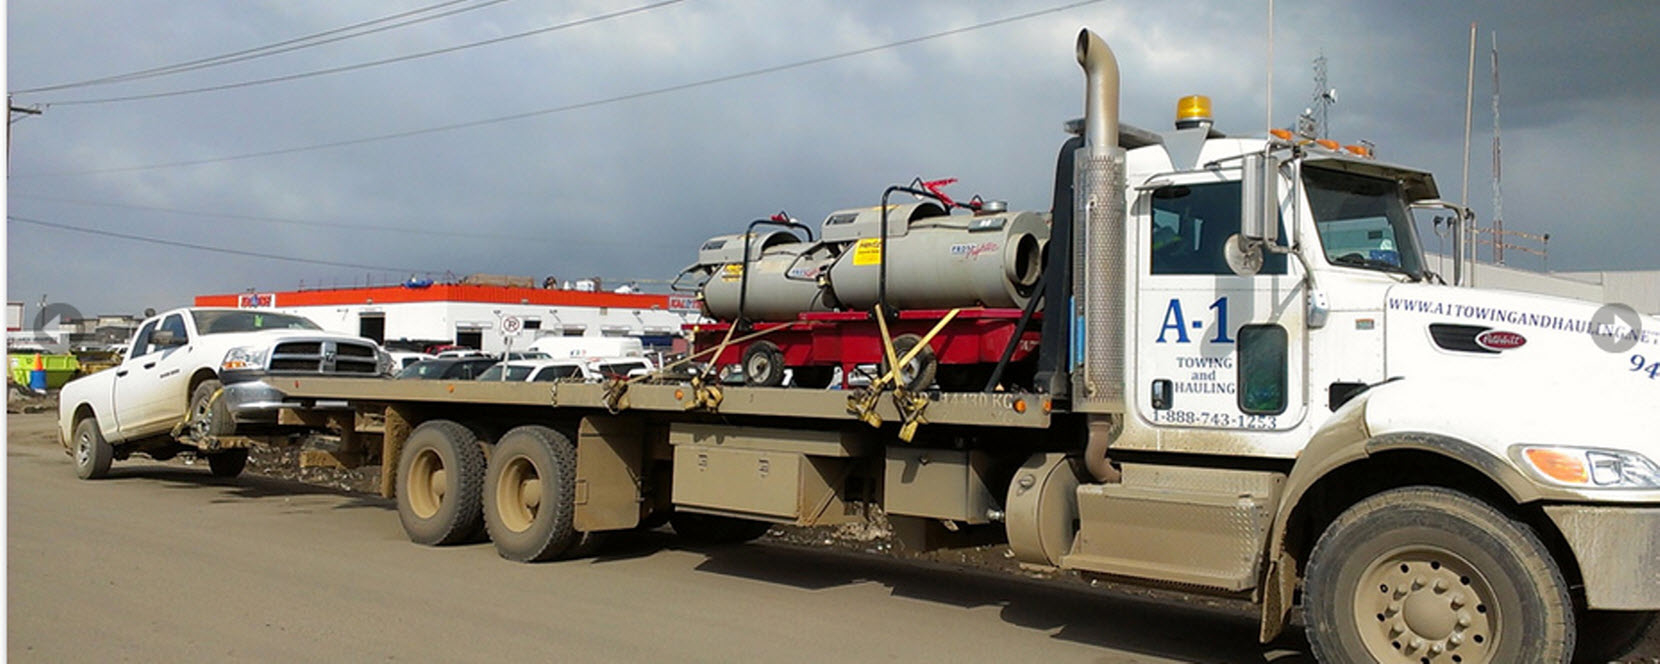 A-1 Equipment Hauling & Towing in Fort McMurray: Equipment Towing